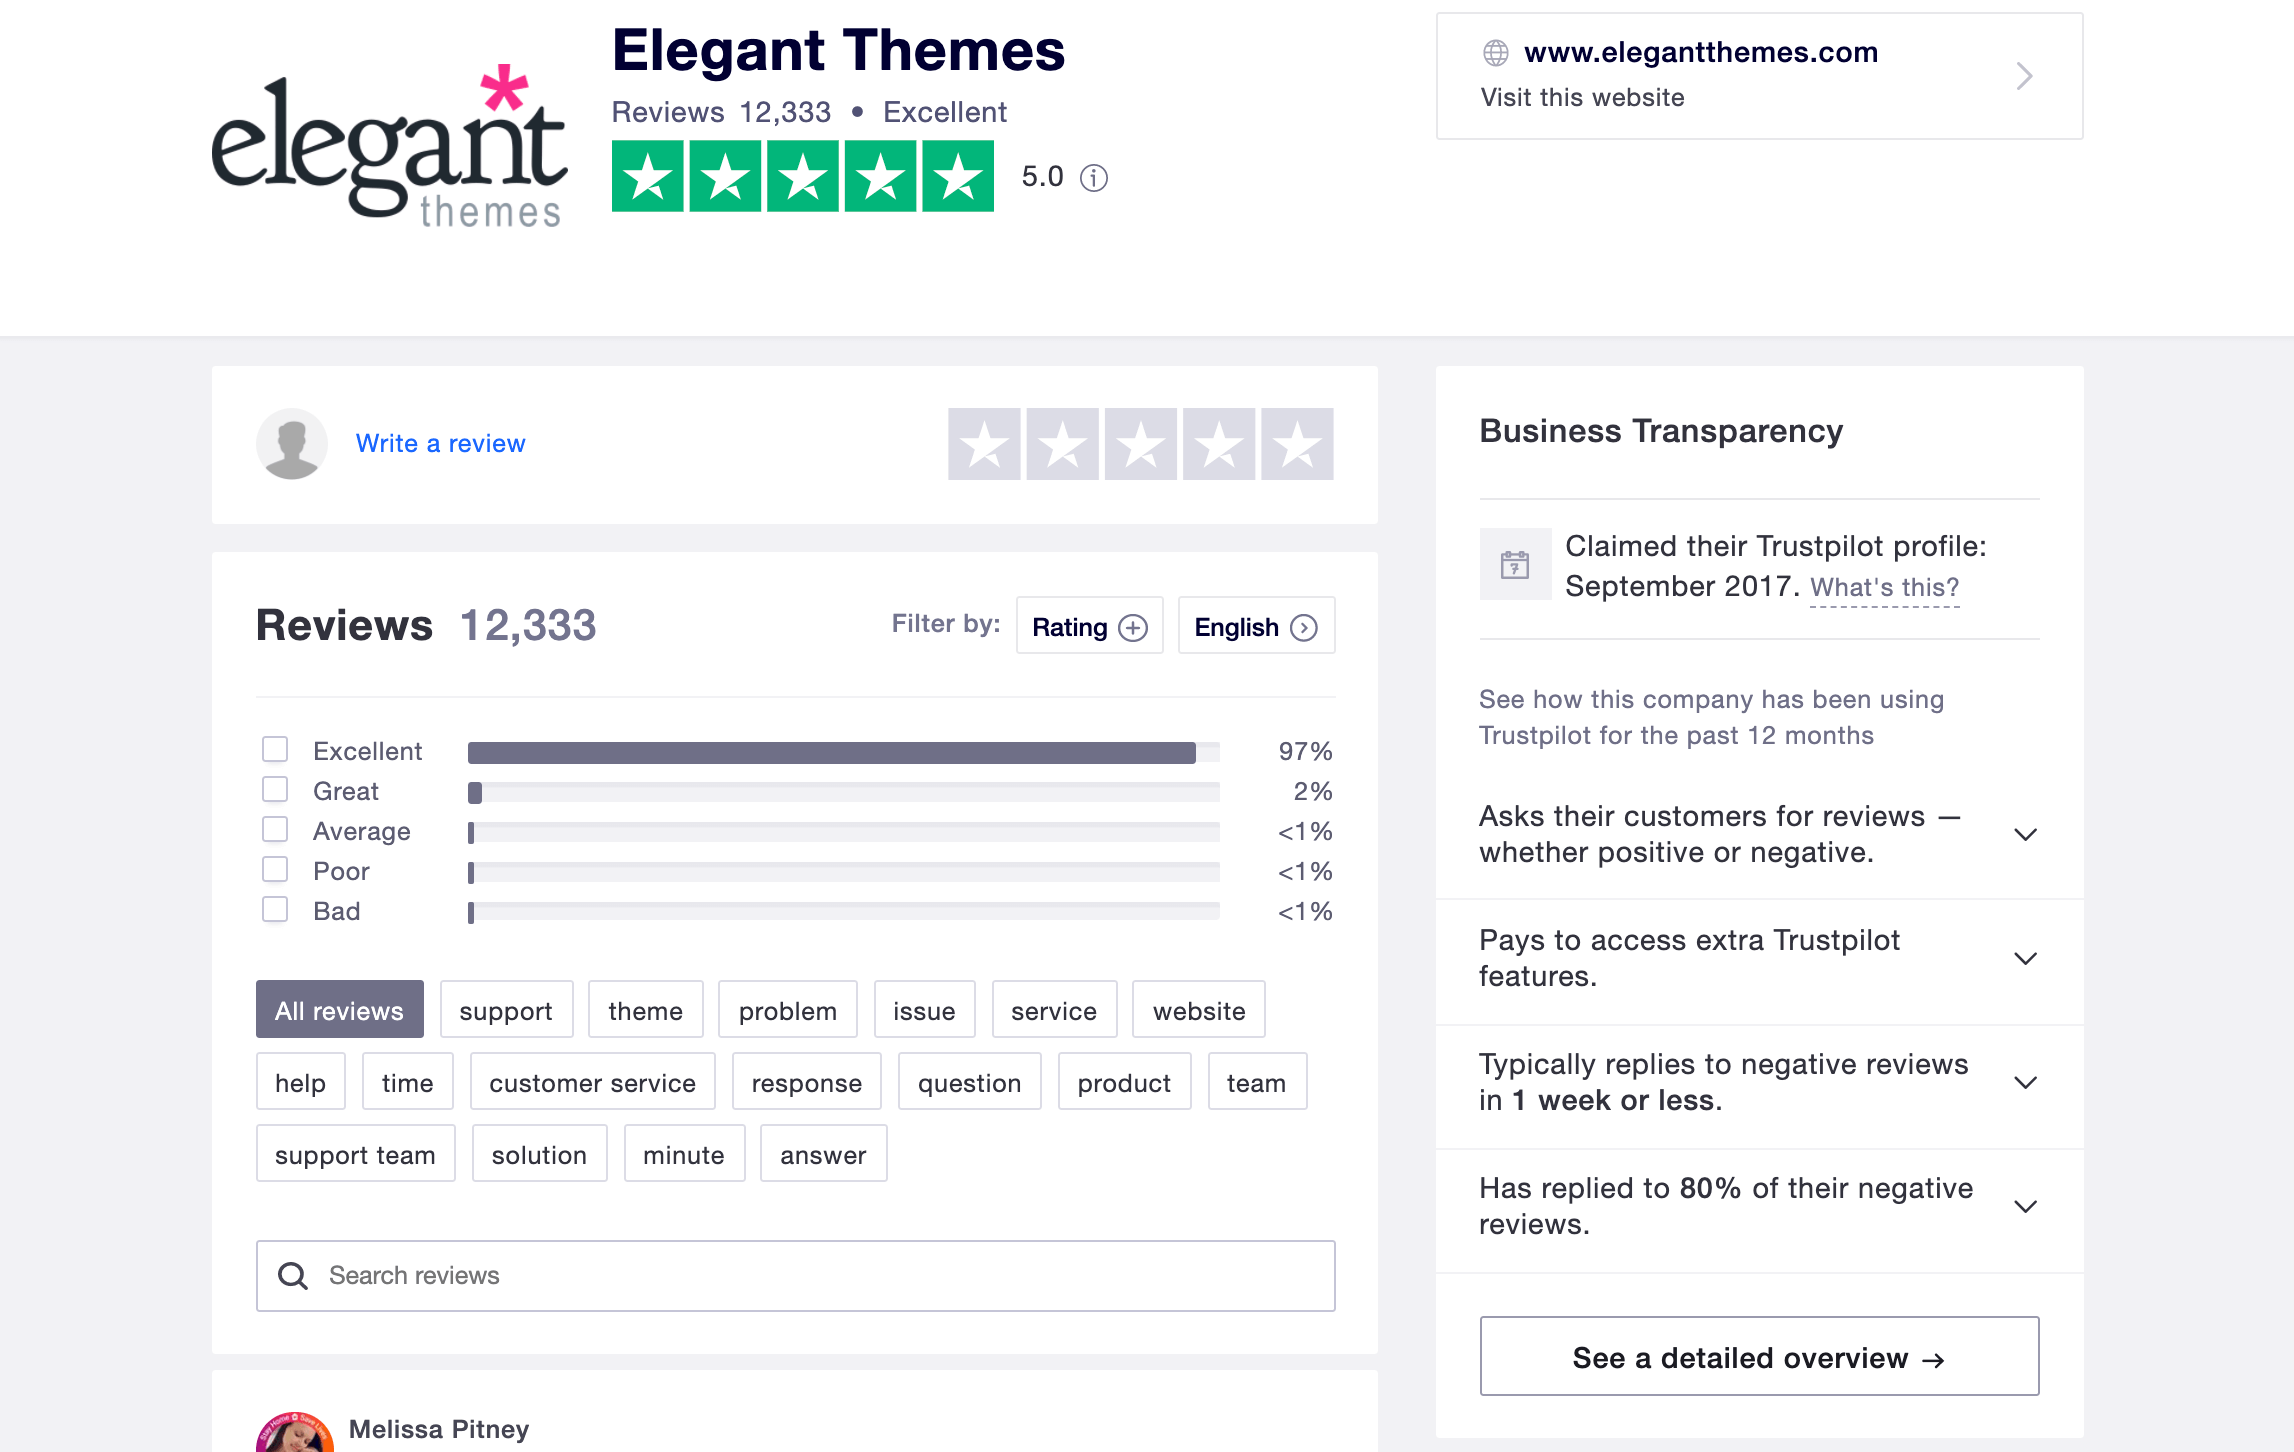 The Elegant Themes Trustpilot profile.